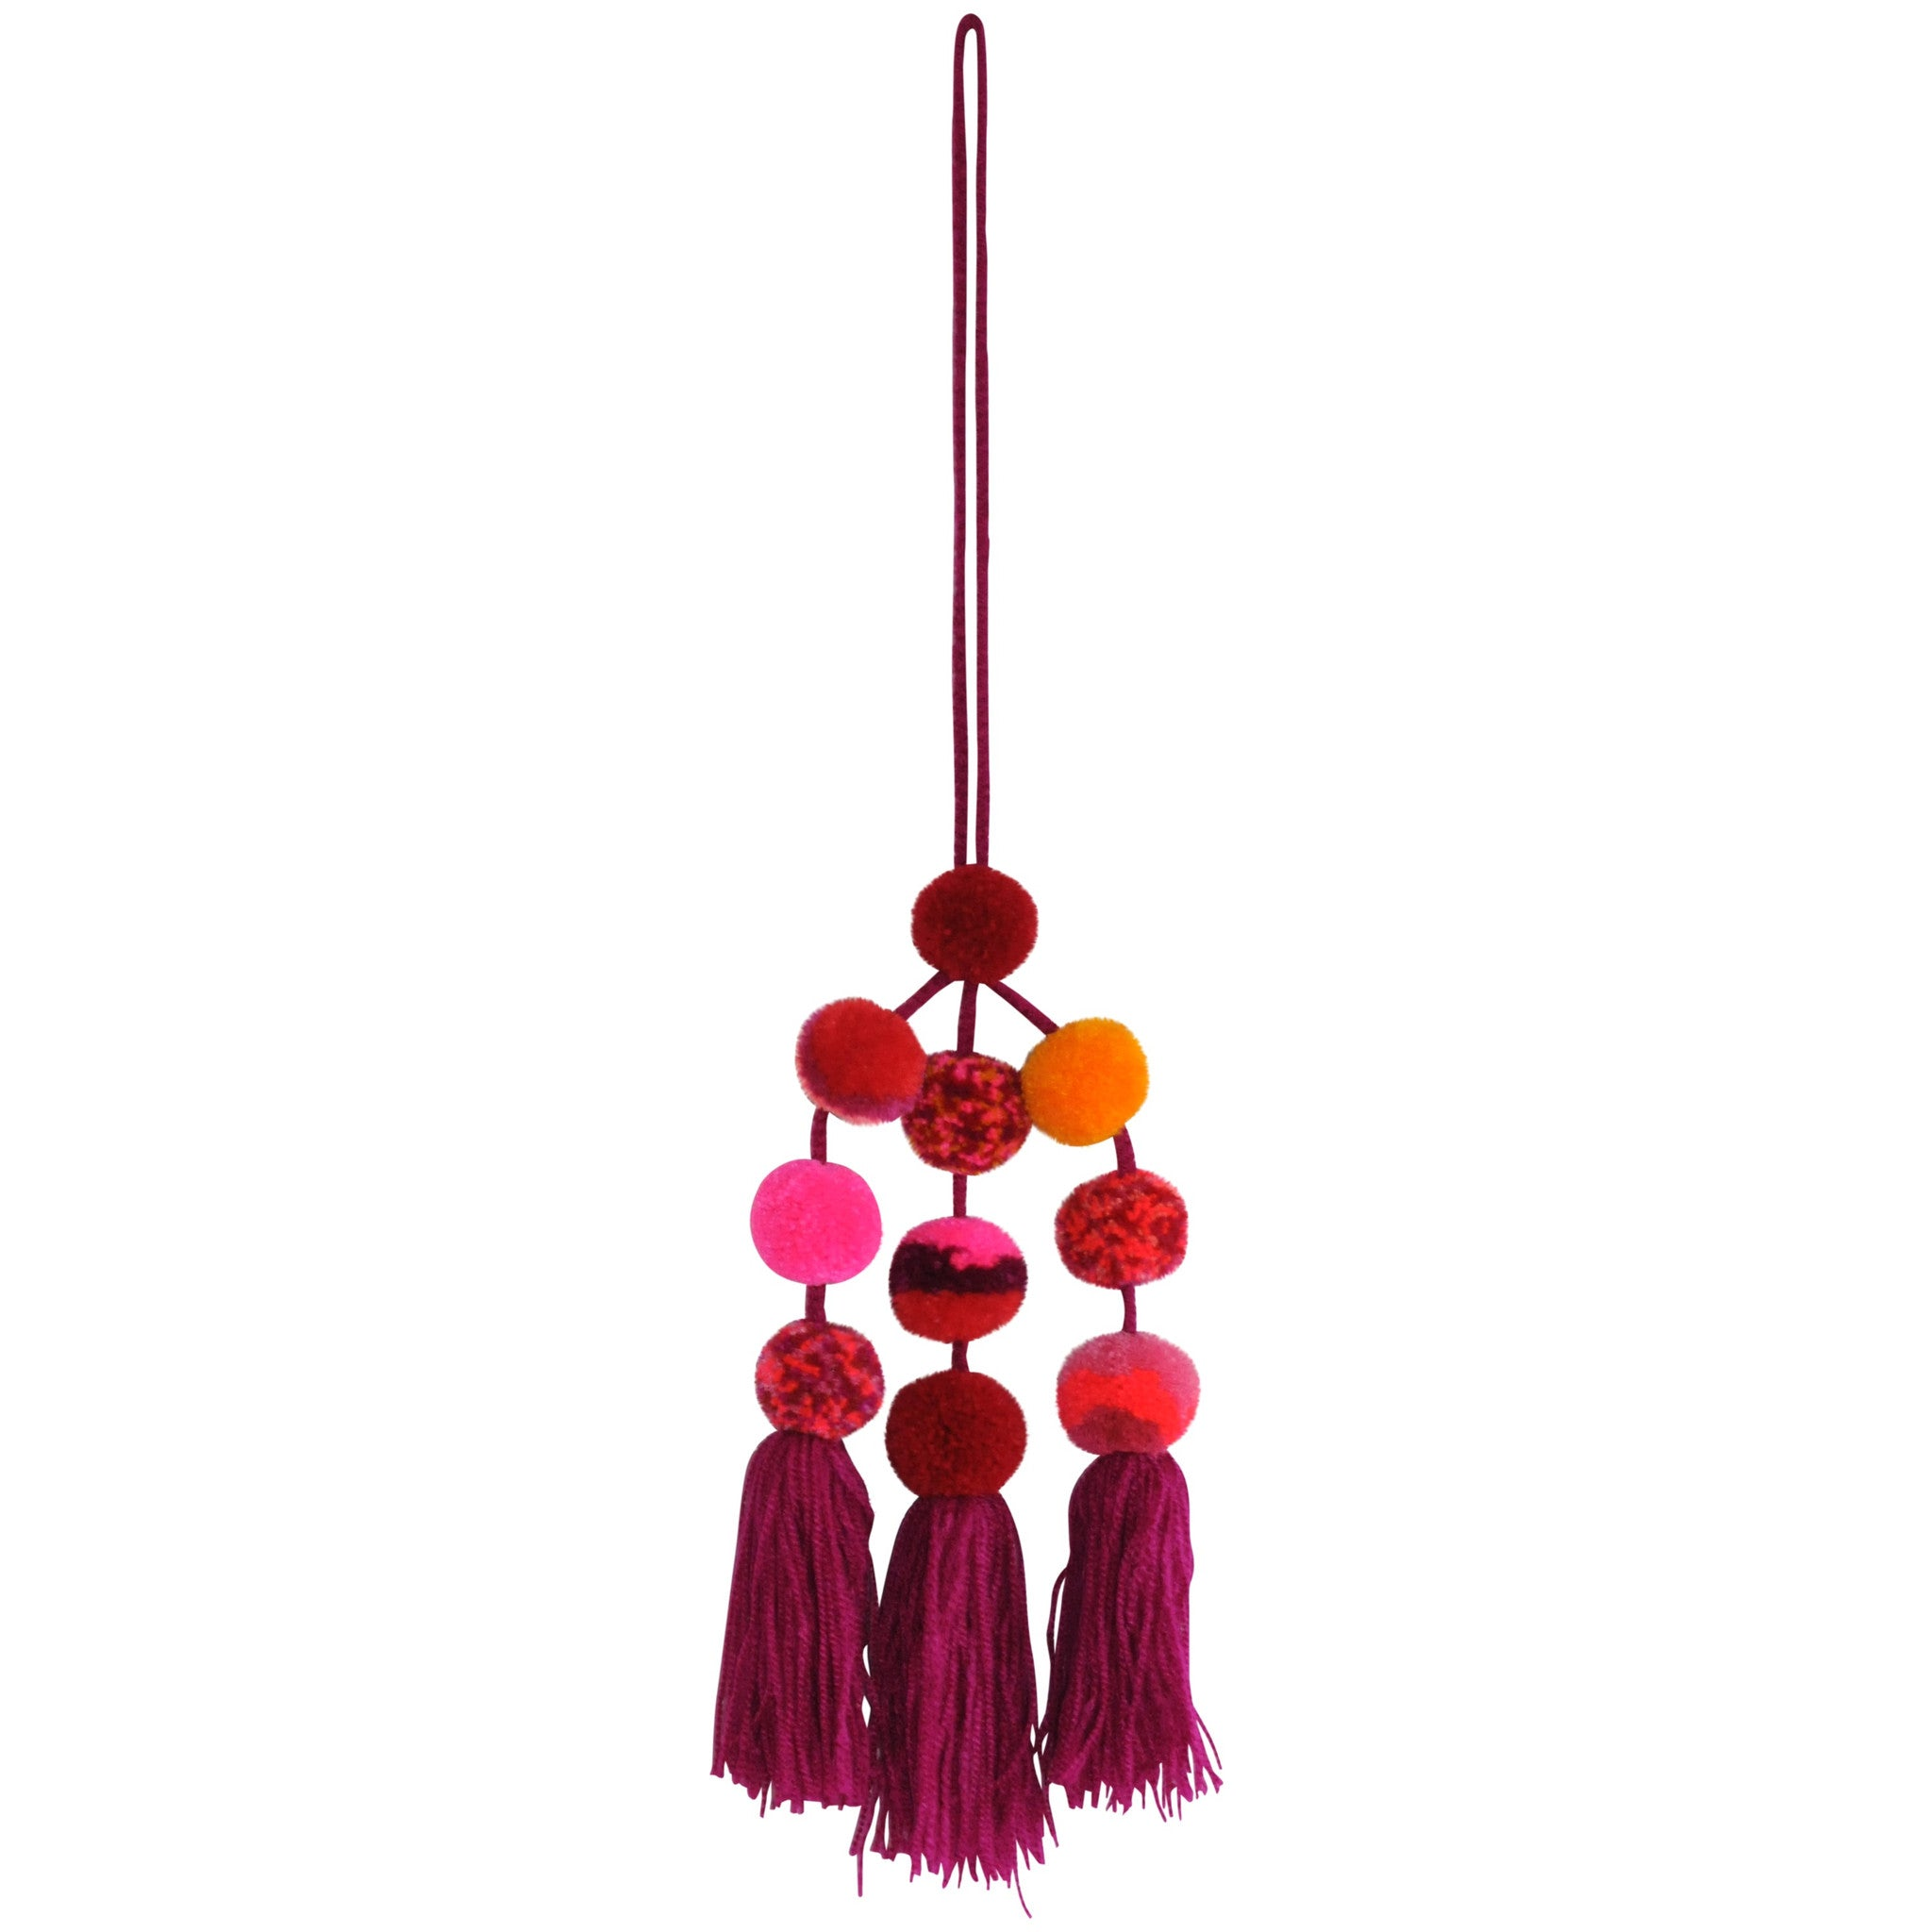 Pompom Cluster - Large - Assorted Pinks and Purples